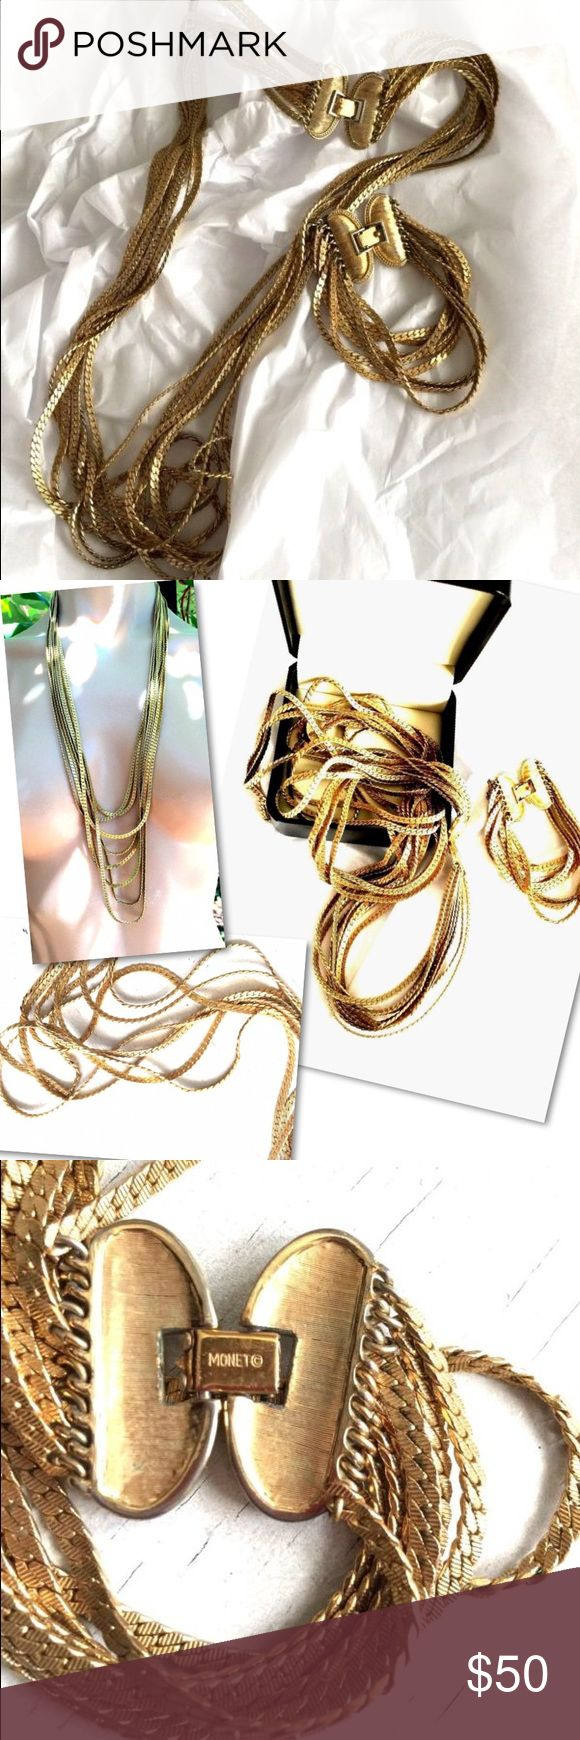 VINTAGE SIGNED MONET GOLD NECKLACE BRACELET SET VINTAGE SIGNED  MONET  GRADUATED 8 STRAND GOLD CHAIN NECKLACE   Long 8 strands in different lengths. It is in very good vintage condition.                  Matching bracelet is beautiful  Probably from the 70's. Monet Jewelry Necklaces